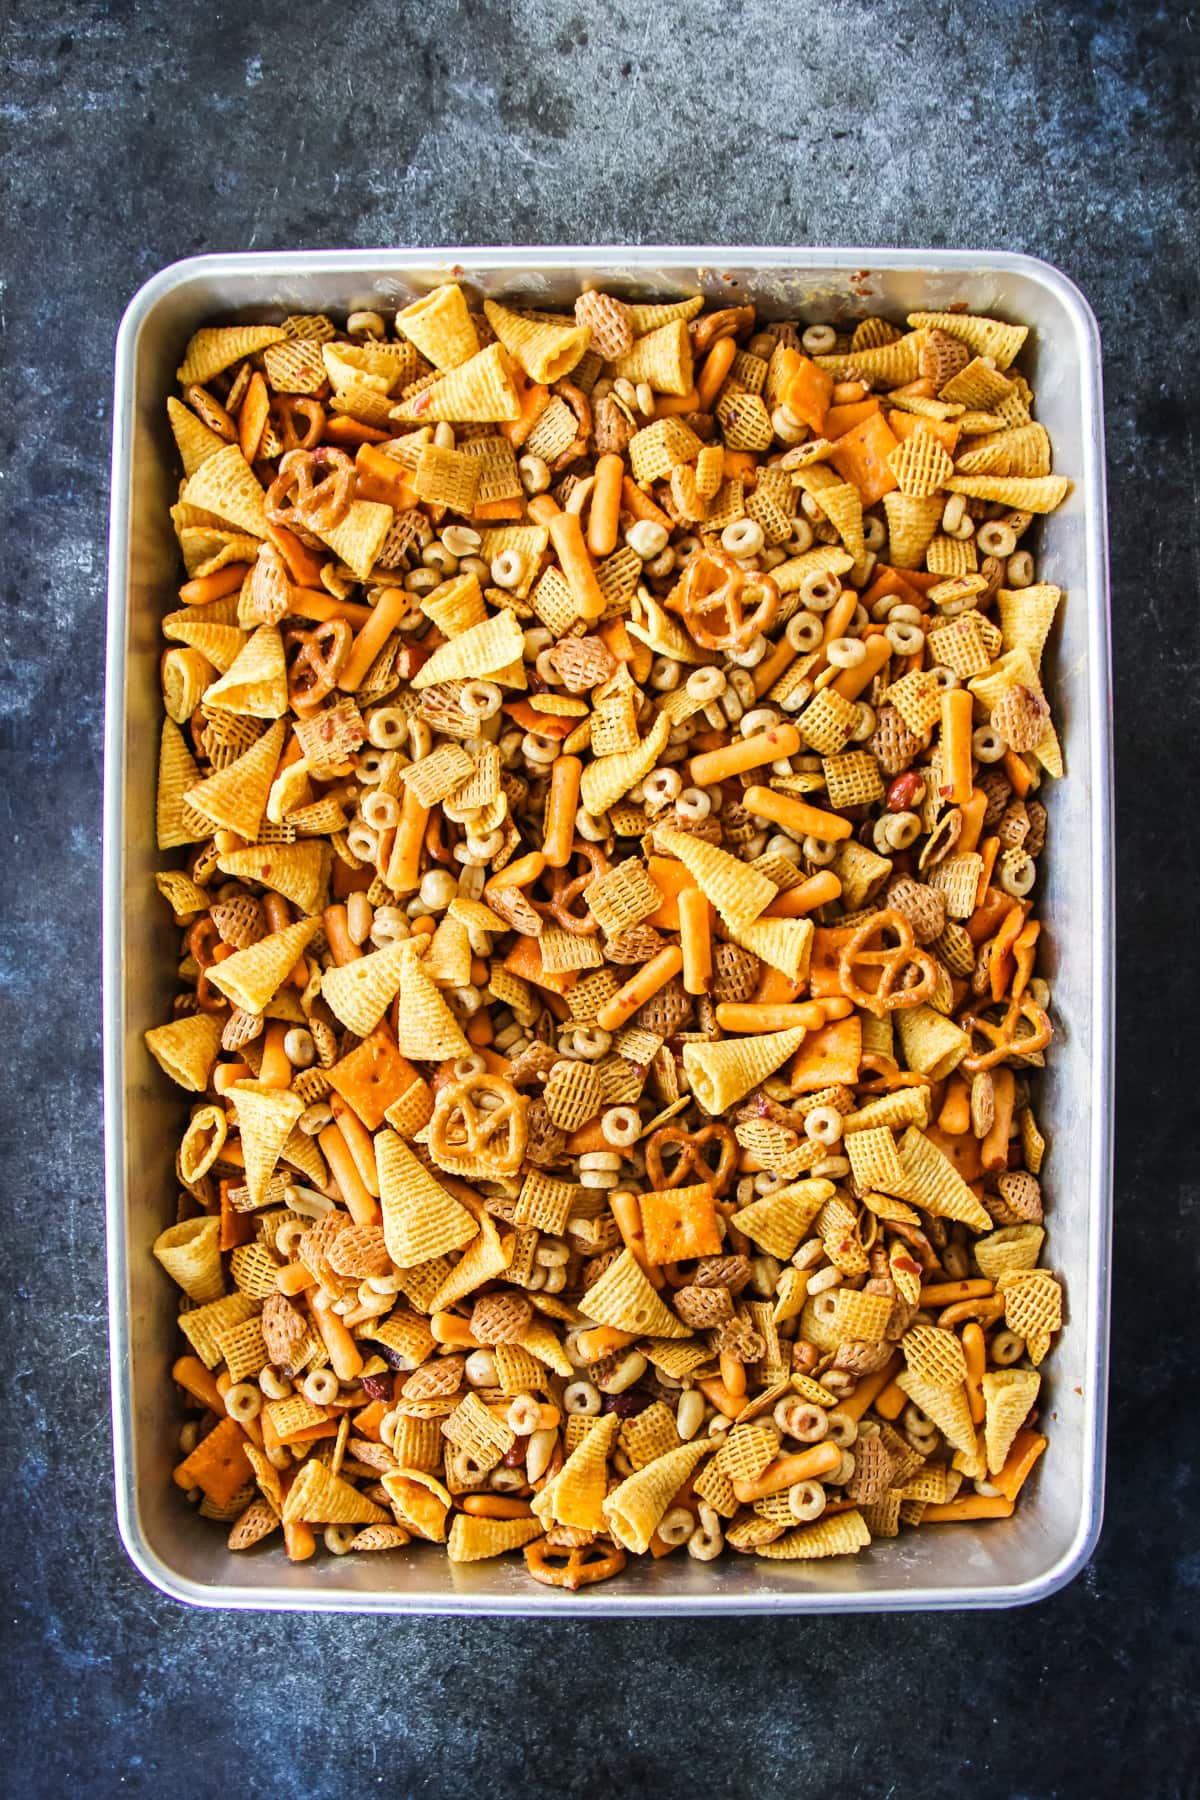 a baking tray of Nuts and Bolts with cheerios, bugles, pretzels, nuts and cereal